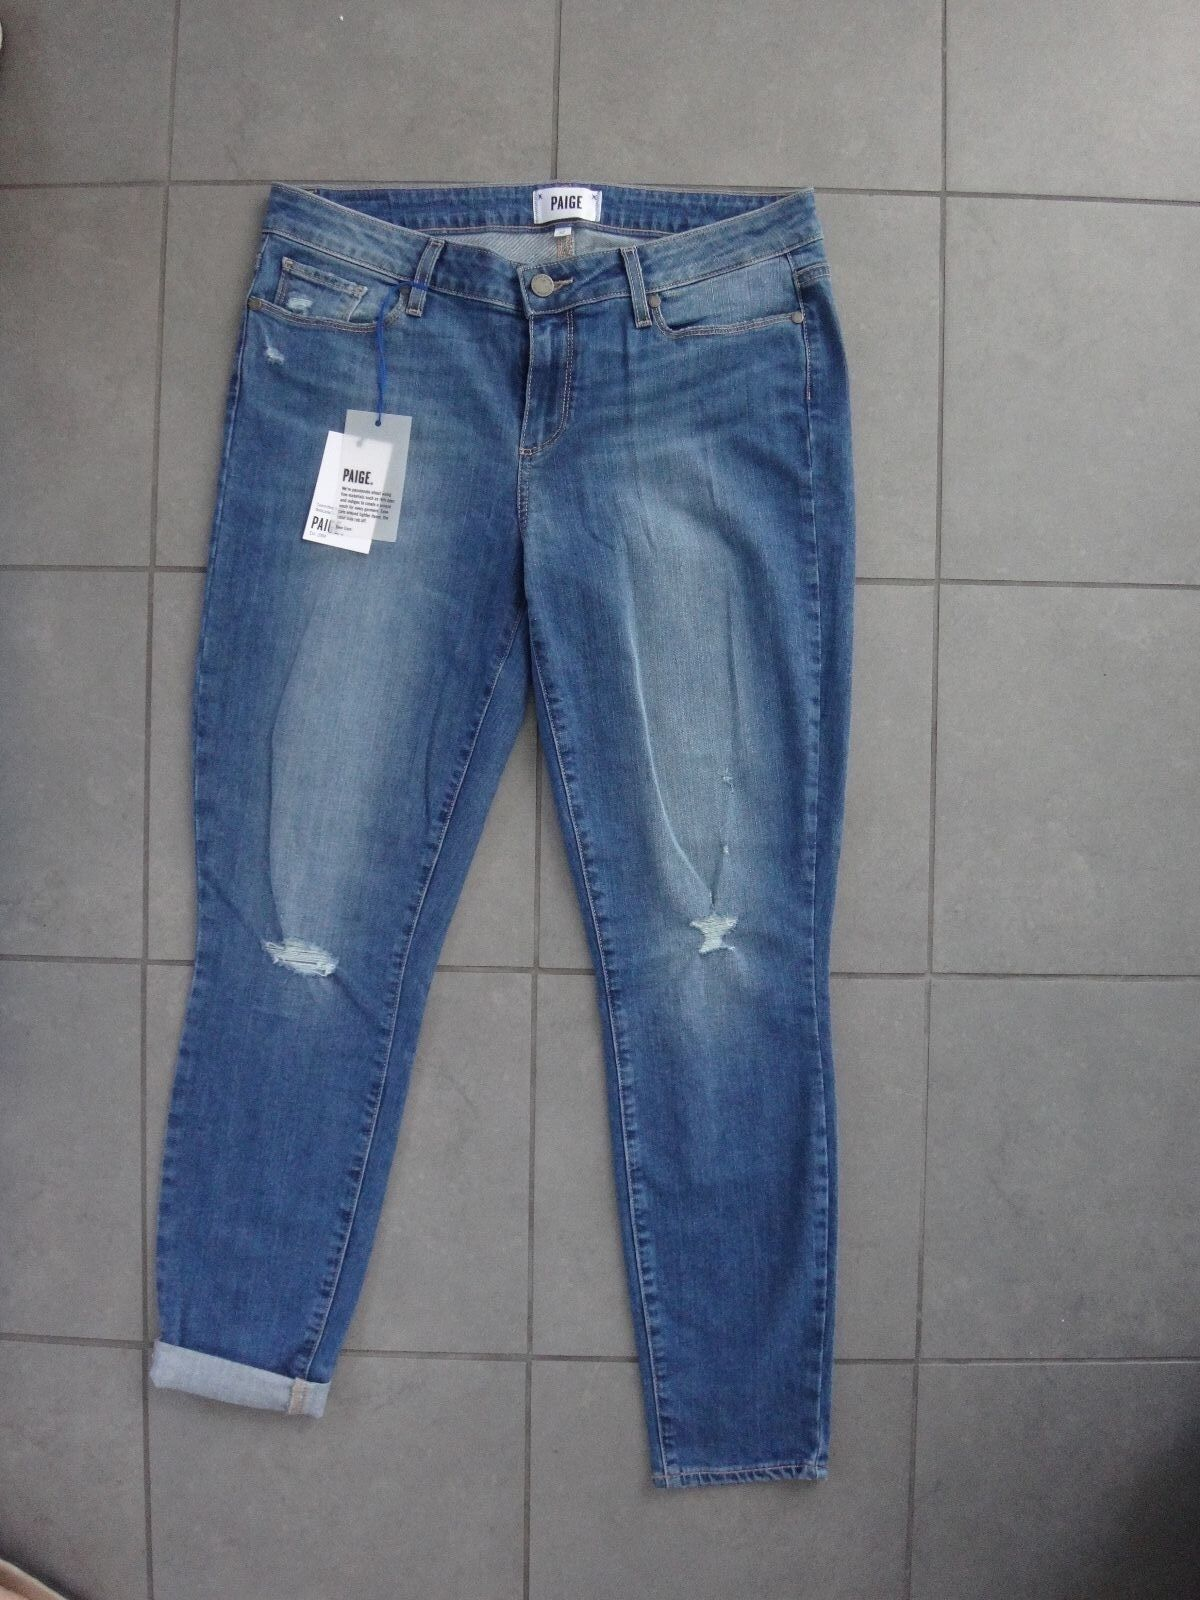 Paige verdugo ankle nora destructed skinny jeans sz.32 NWT